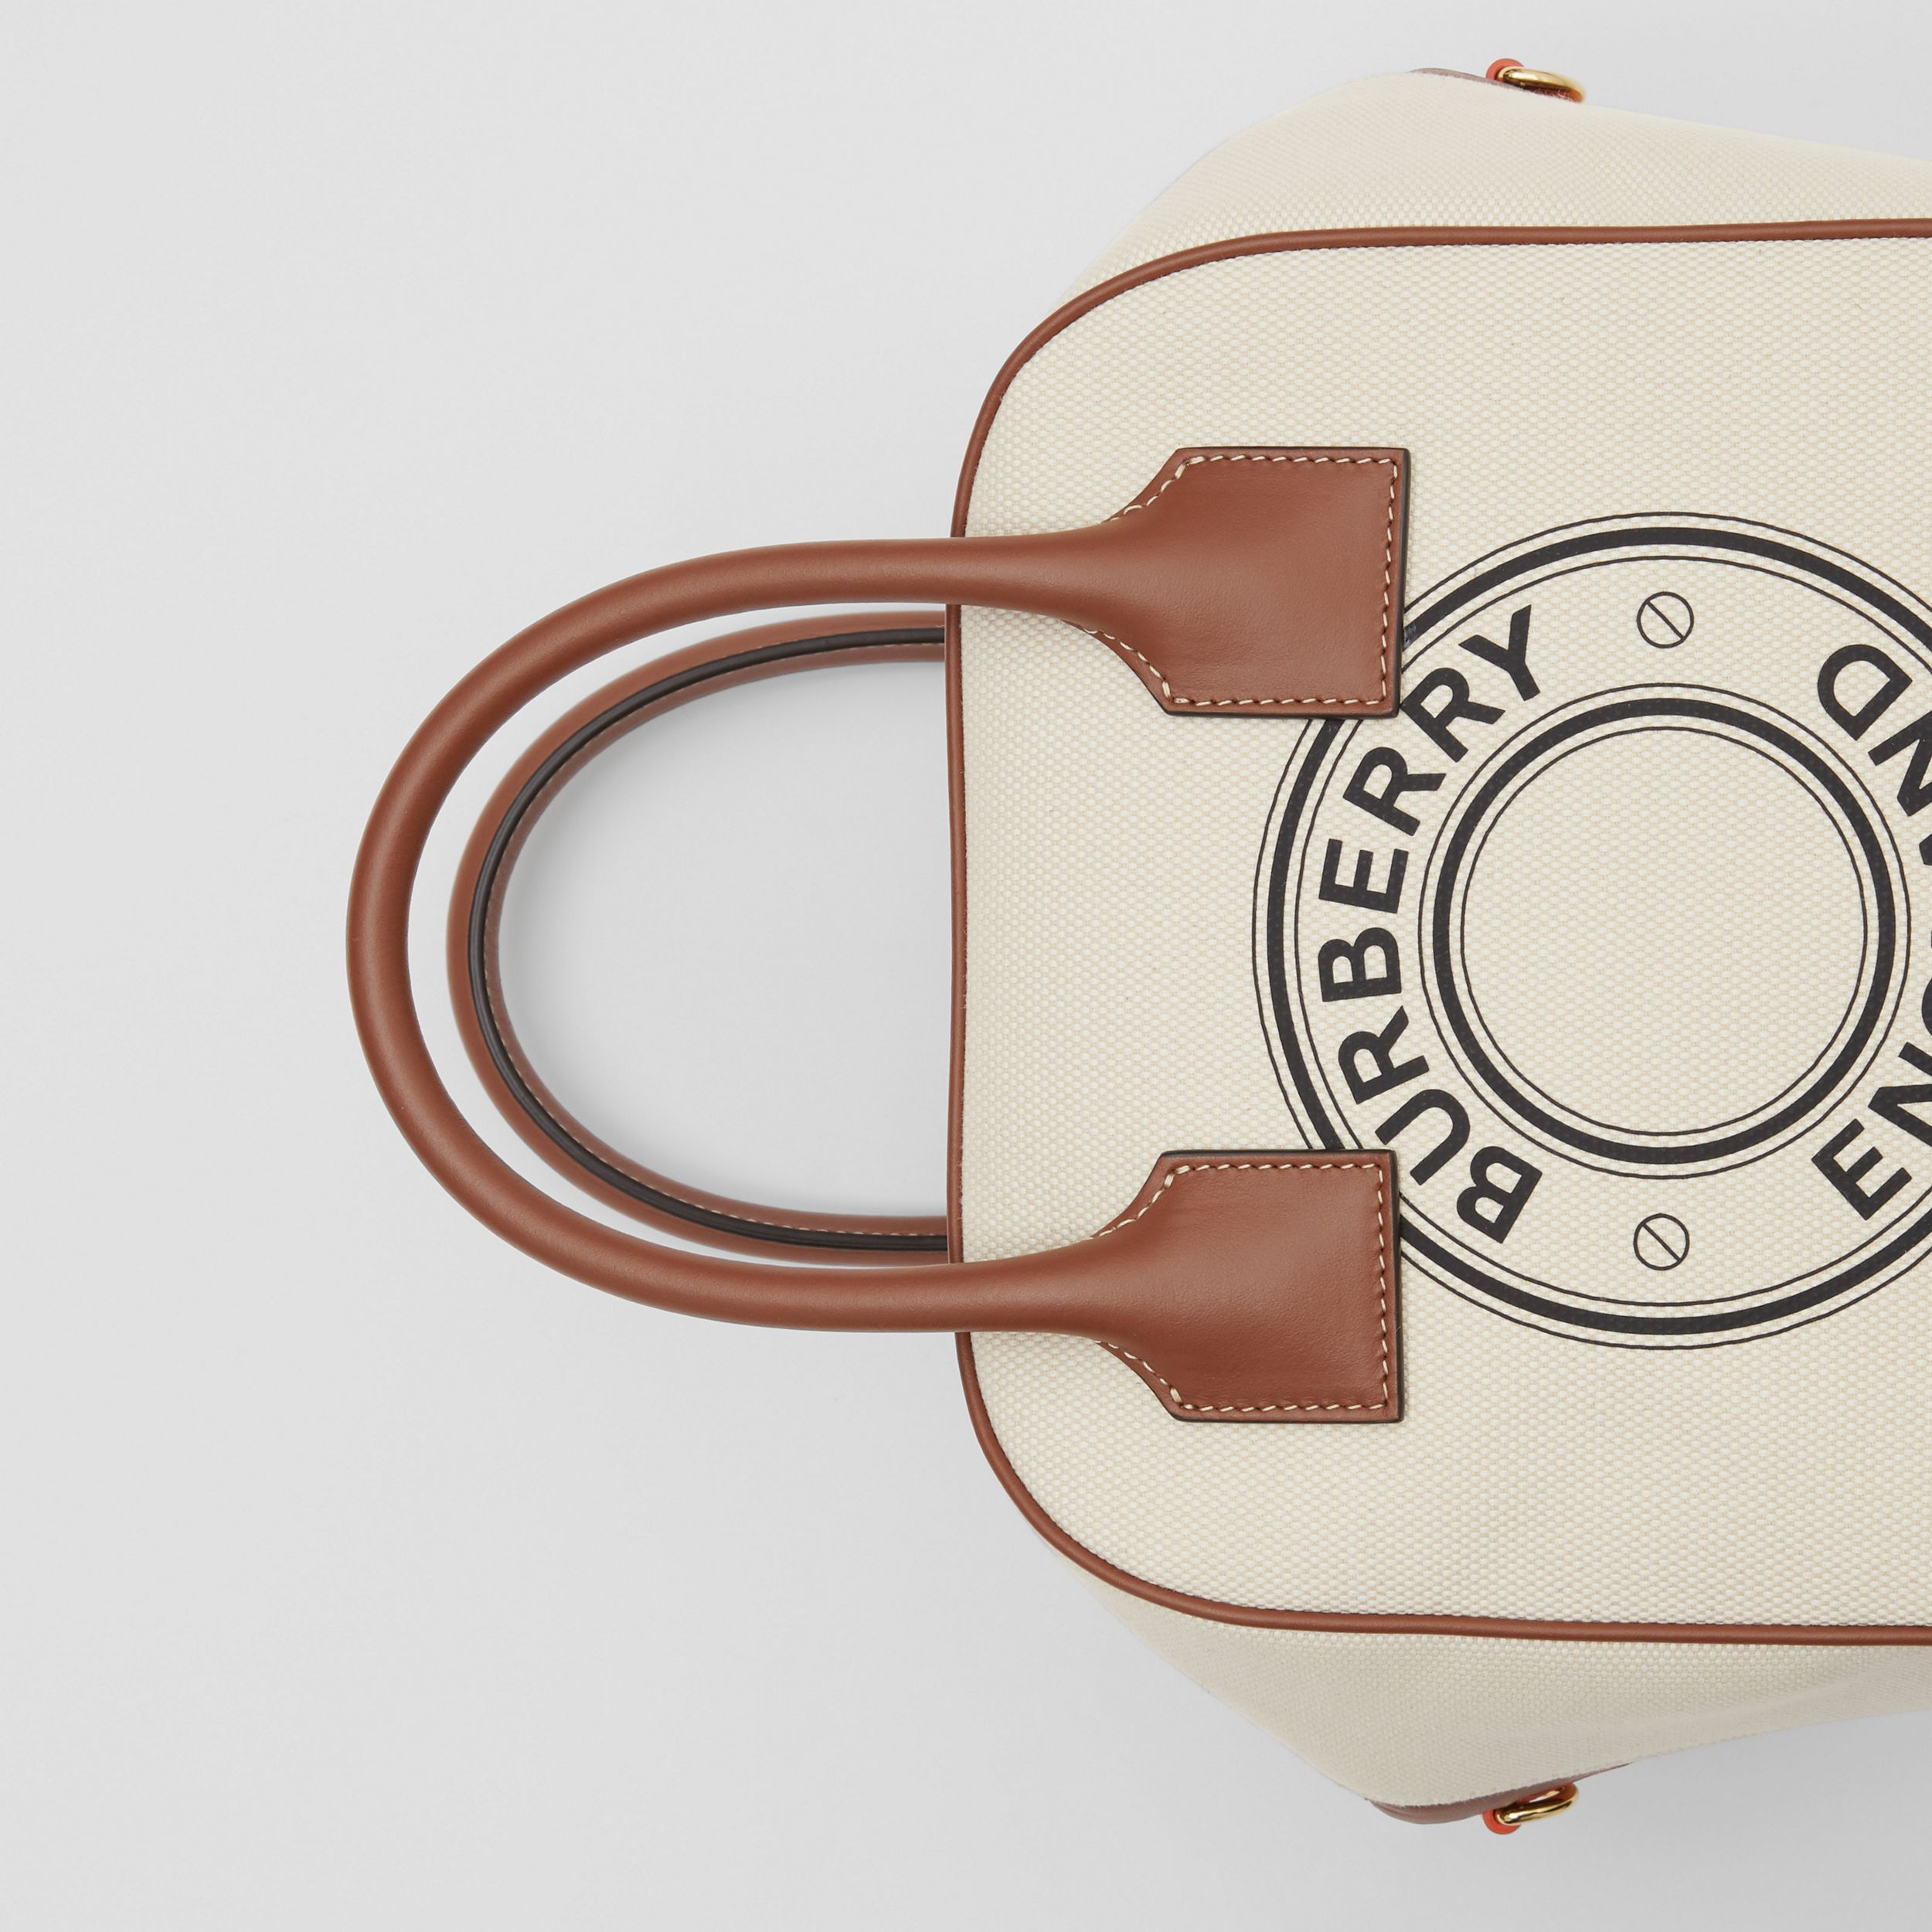 Small Logo Graphic Cotton Canvas Cube Bag in Natural/tan - Women | Burberry - 2